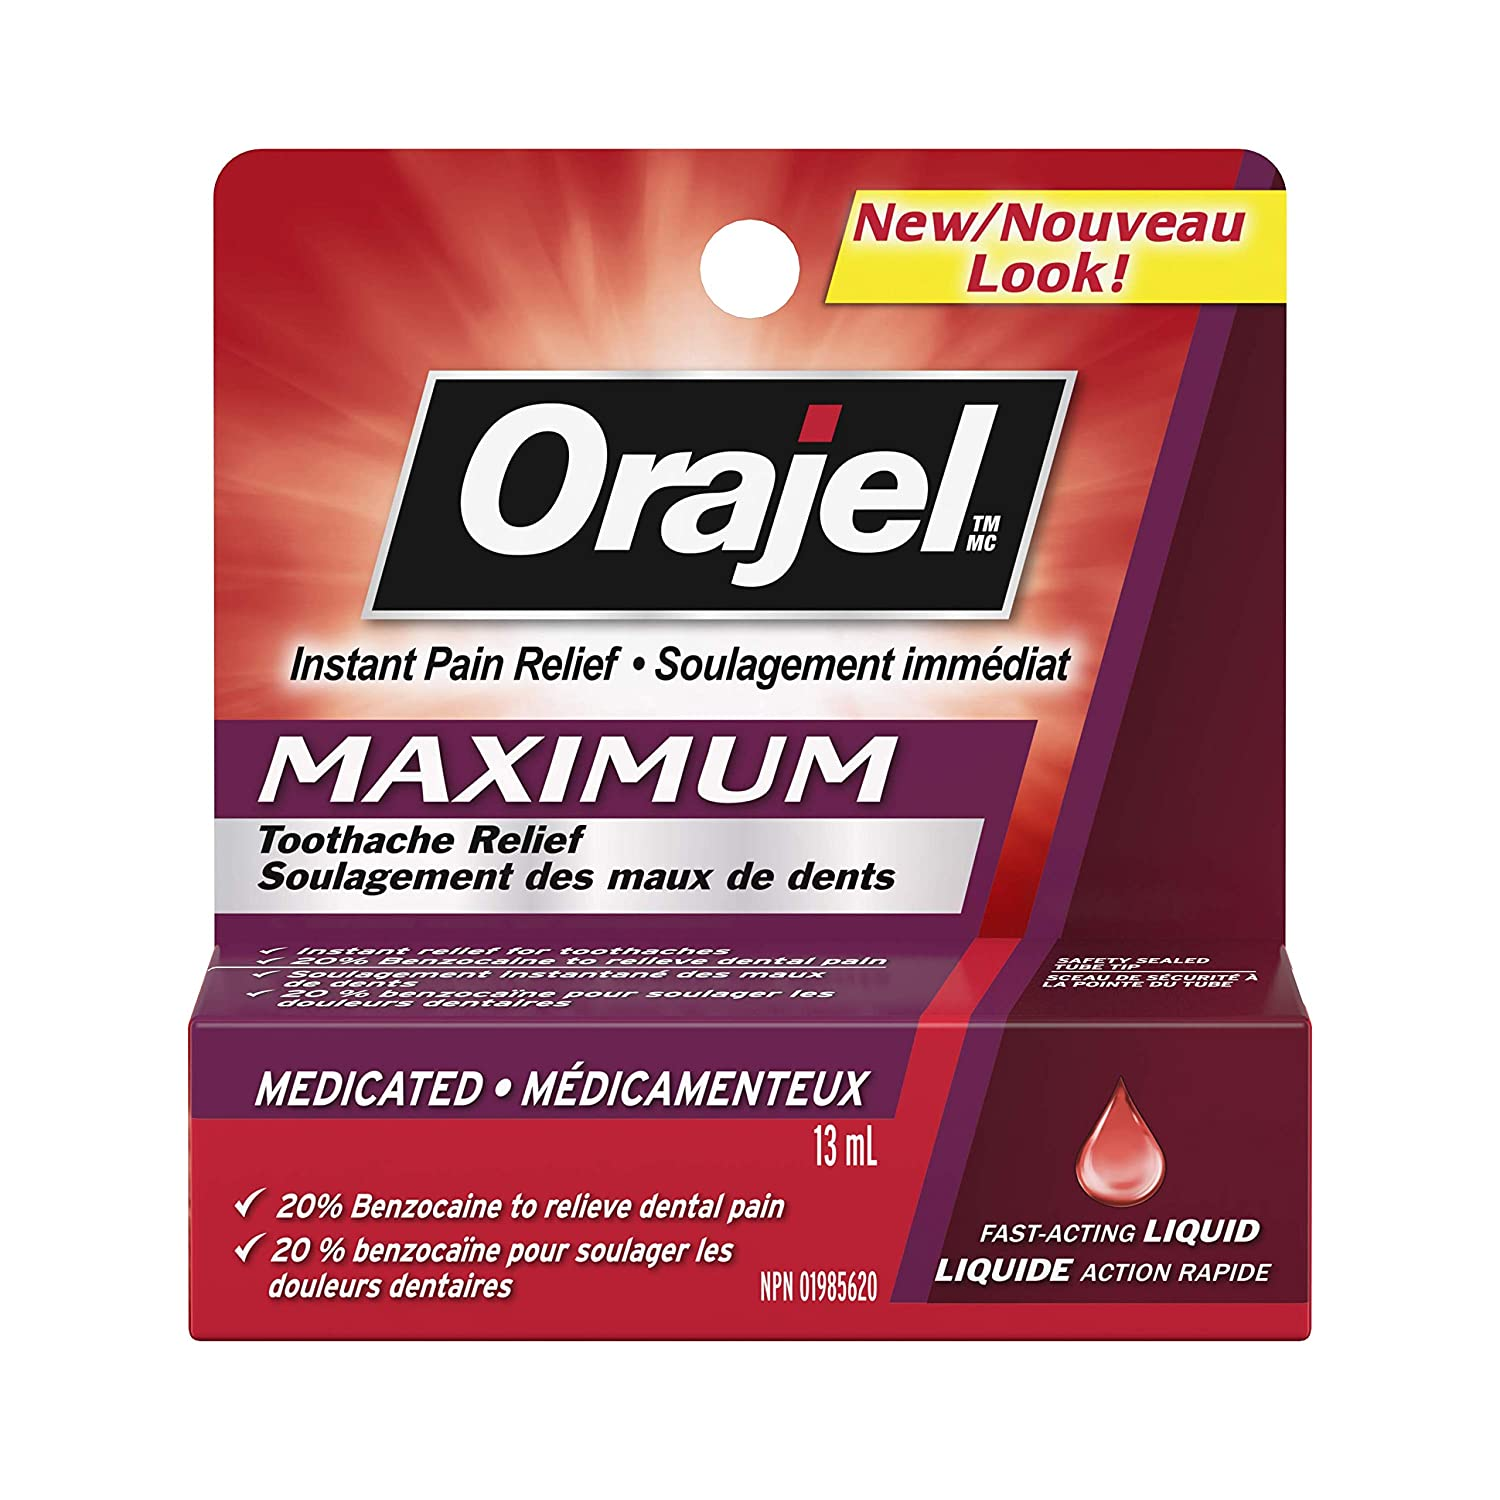 Orajel Maximum Strength Toothache Pain Relief Liquid, 13-ml